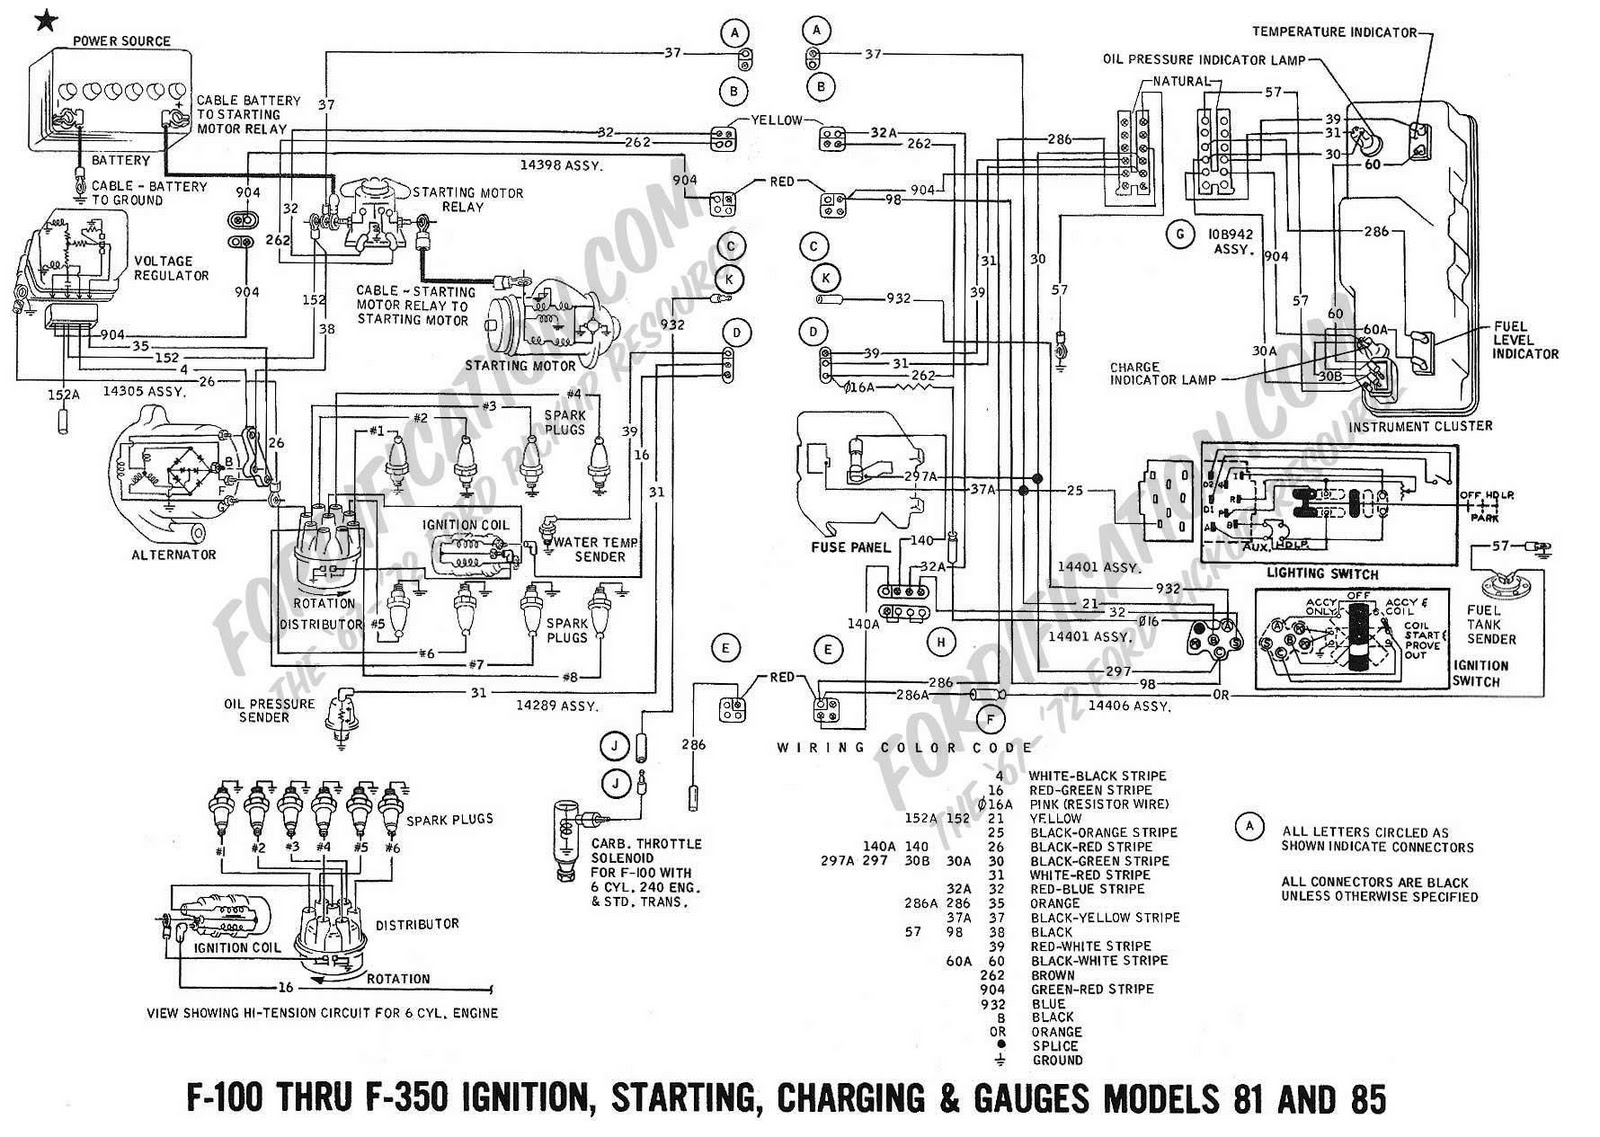 medium resolution of 76 ford ltd ignition wiring diagram wiring diagram todays ford truck alternator diagram 1974 ford ltd alternator wiring